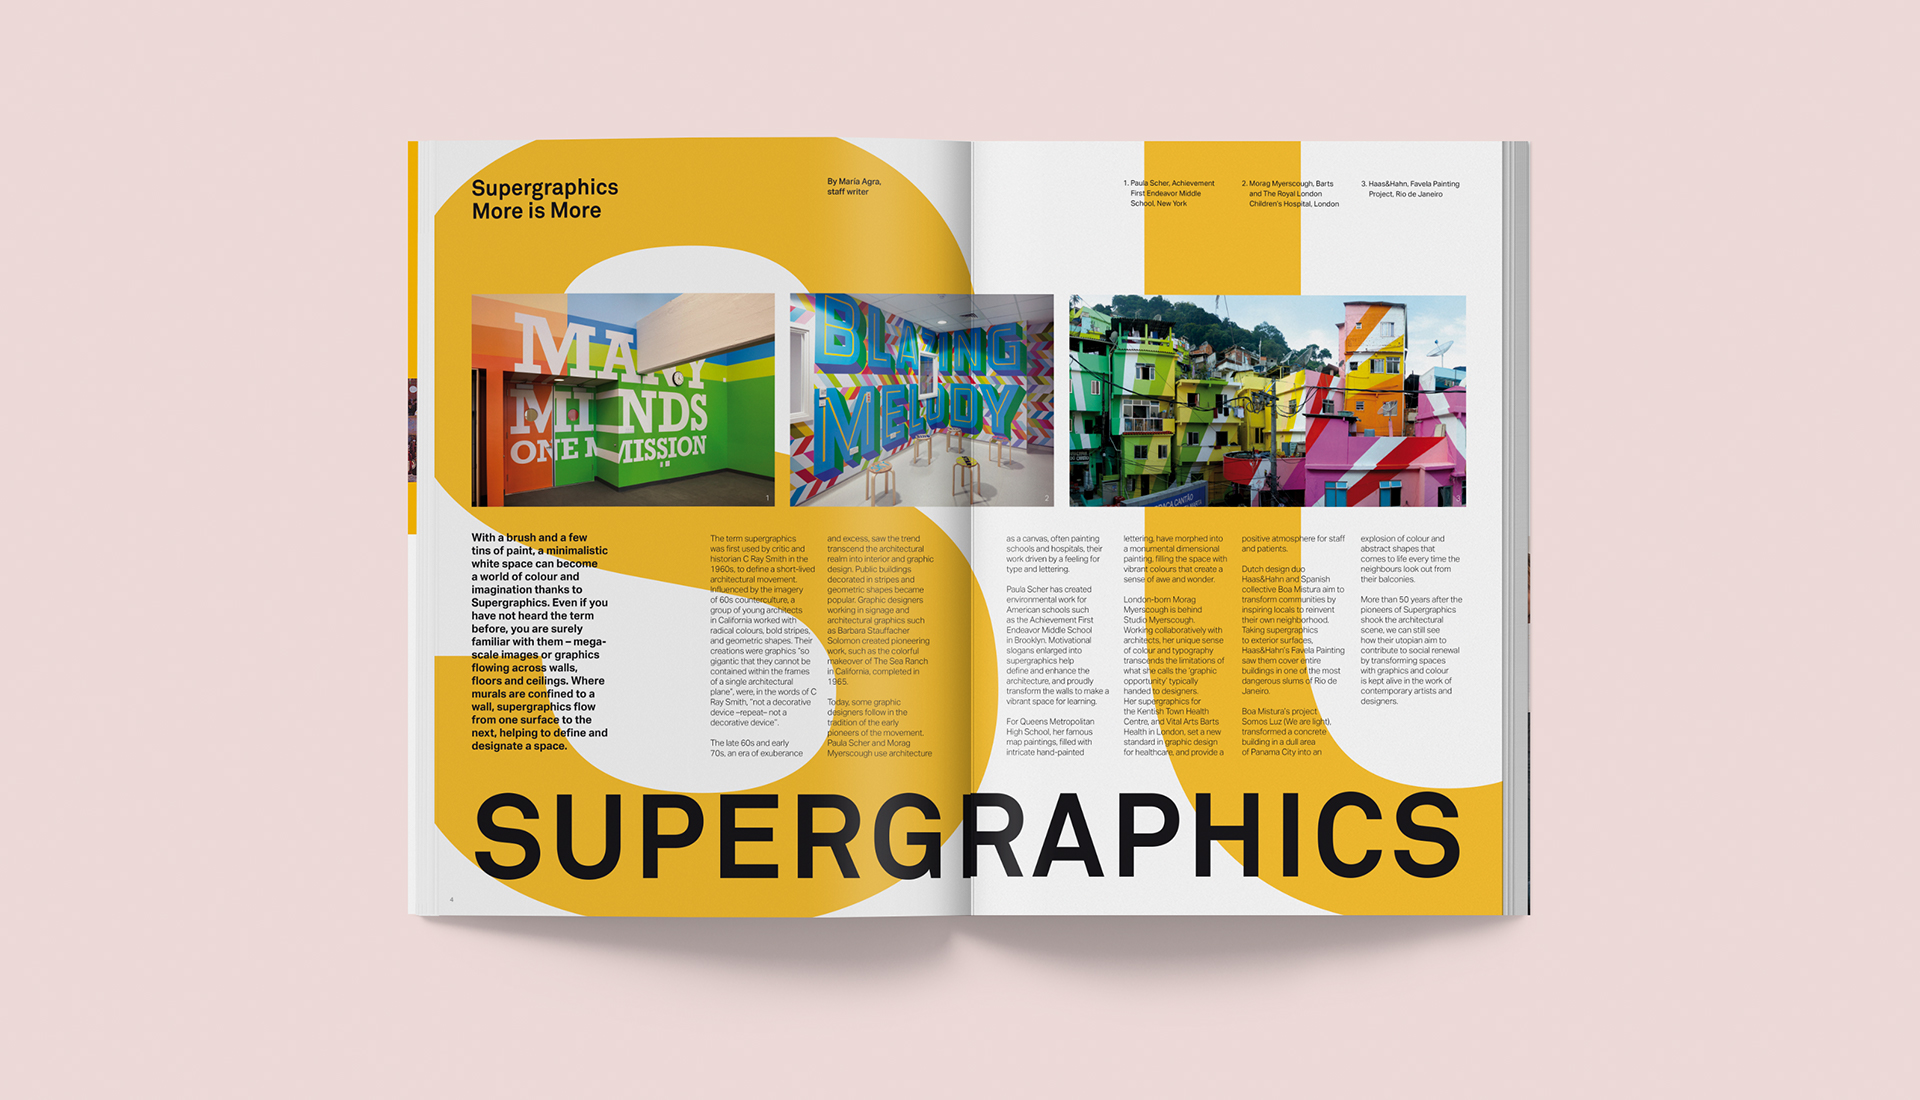 Supergraphics More is More